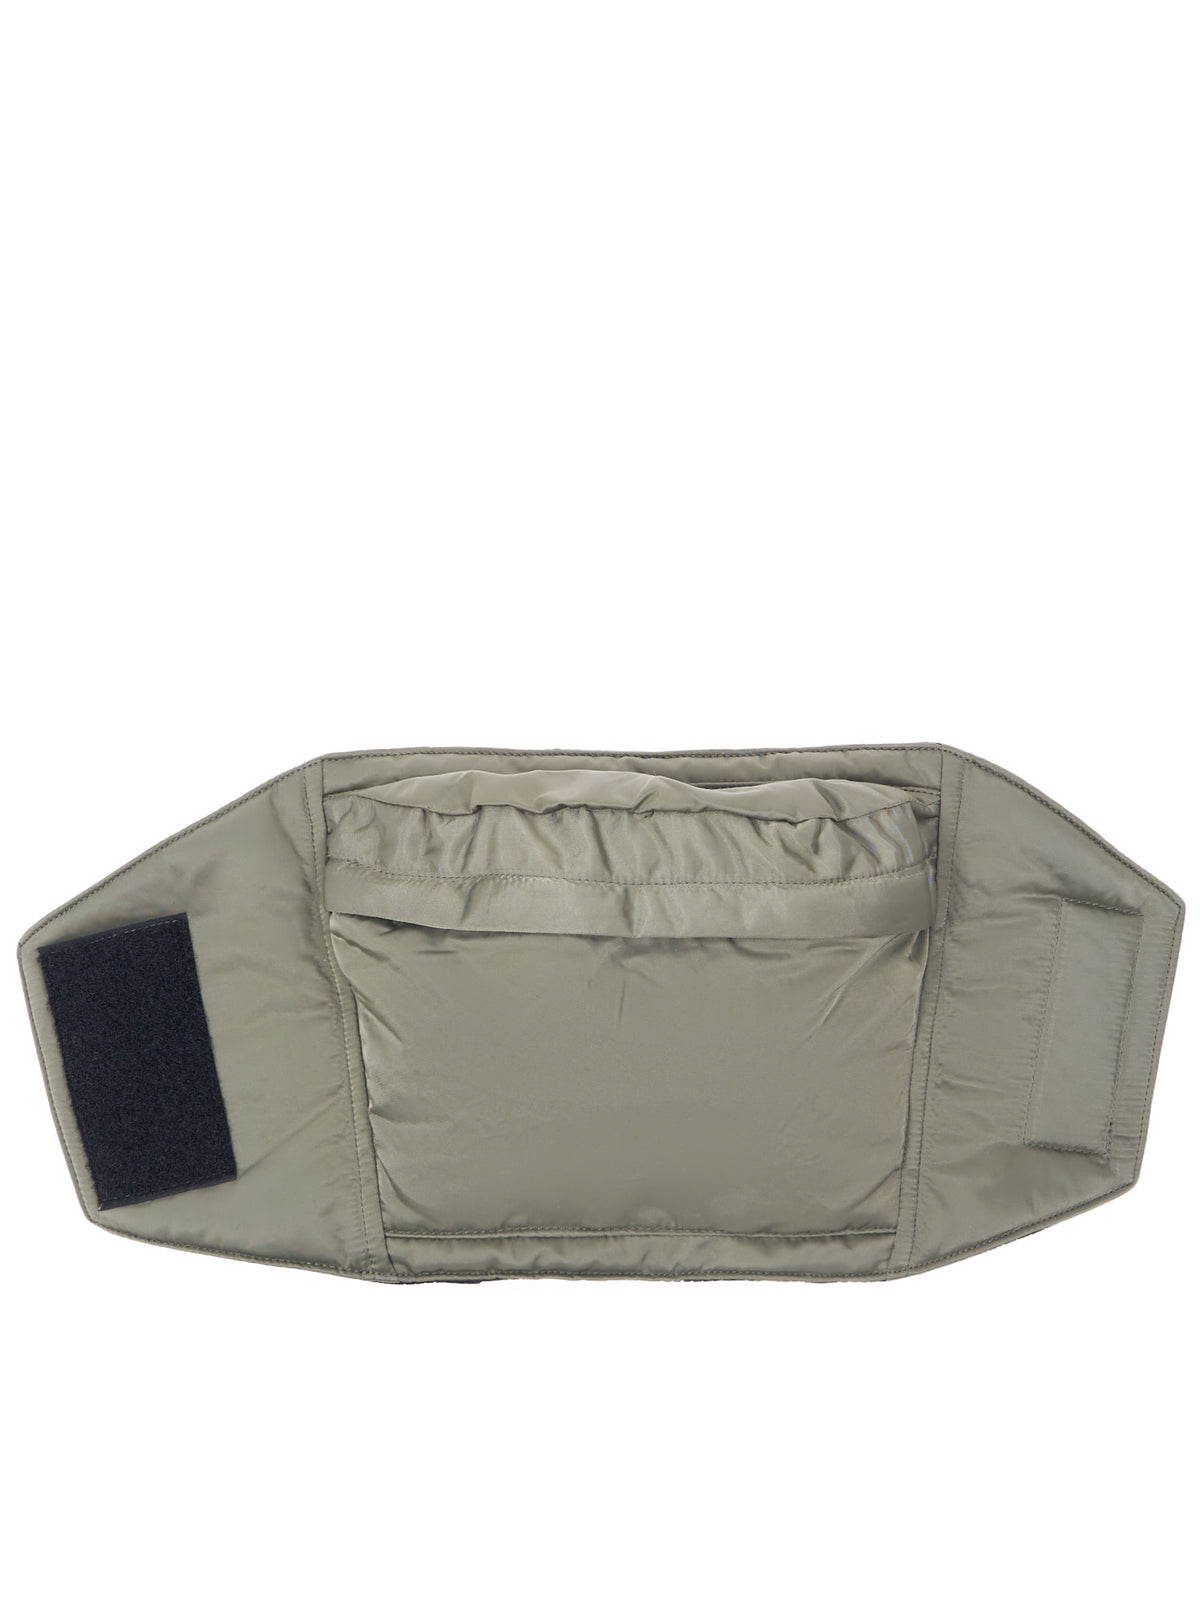 Velcro Bag (677BGU4-ARMY-GREEN)